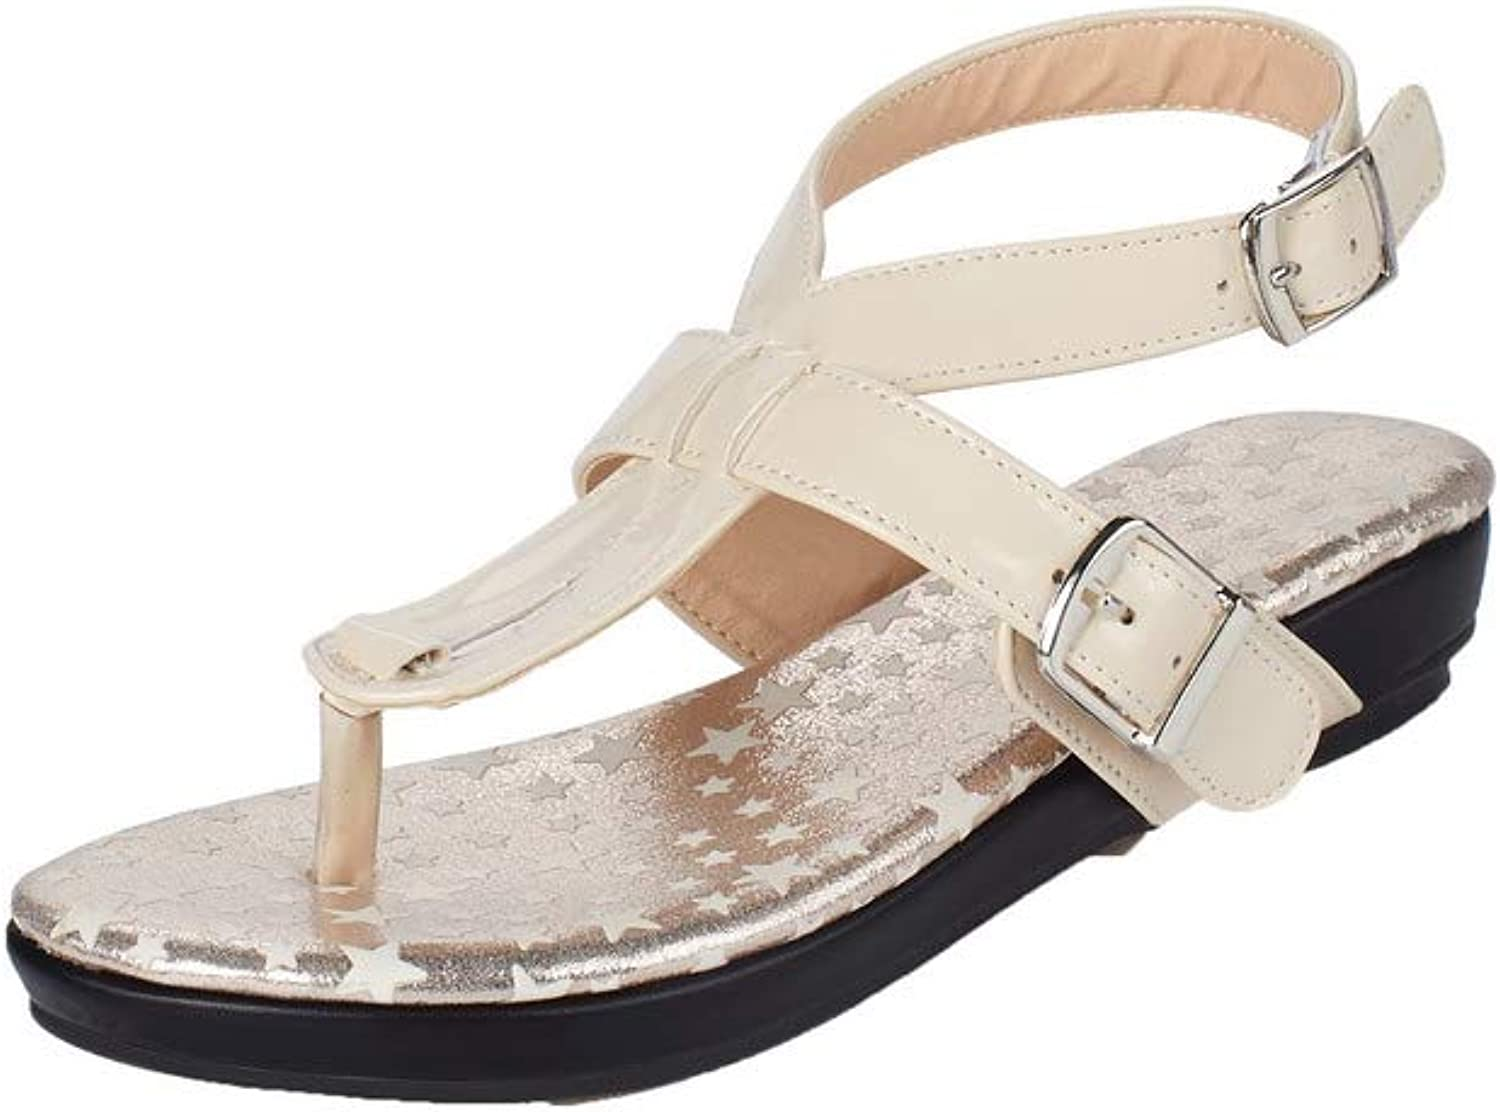 AllhqFashion Women's Solid Patent Leather Low-Heels Open-Toe Buckle Sandals, FBULD015093